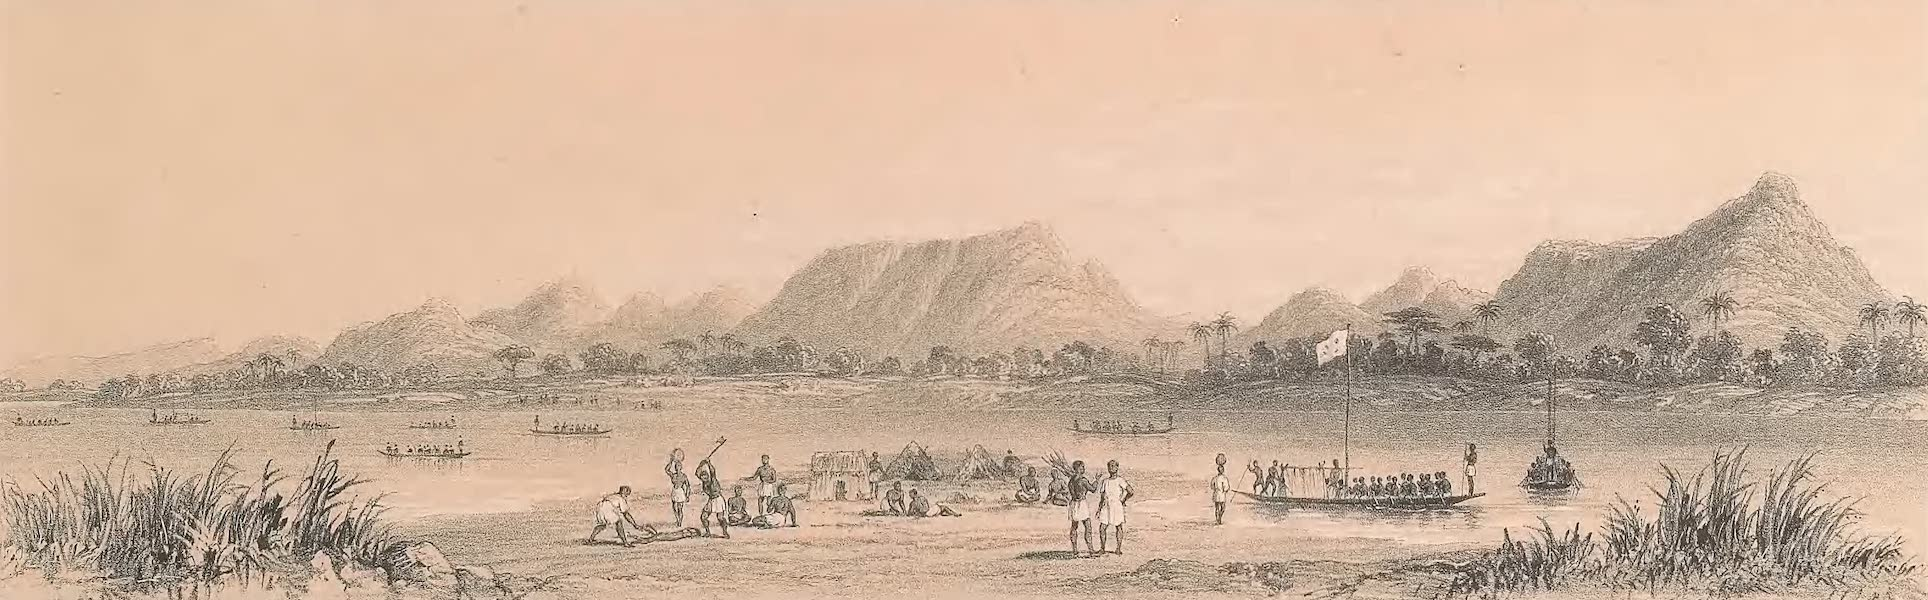 Picturesque Views on the River Niger - Mountains & Market Canoes Near Bokweh (1840)